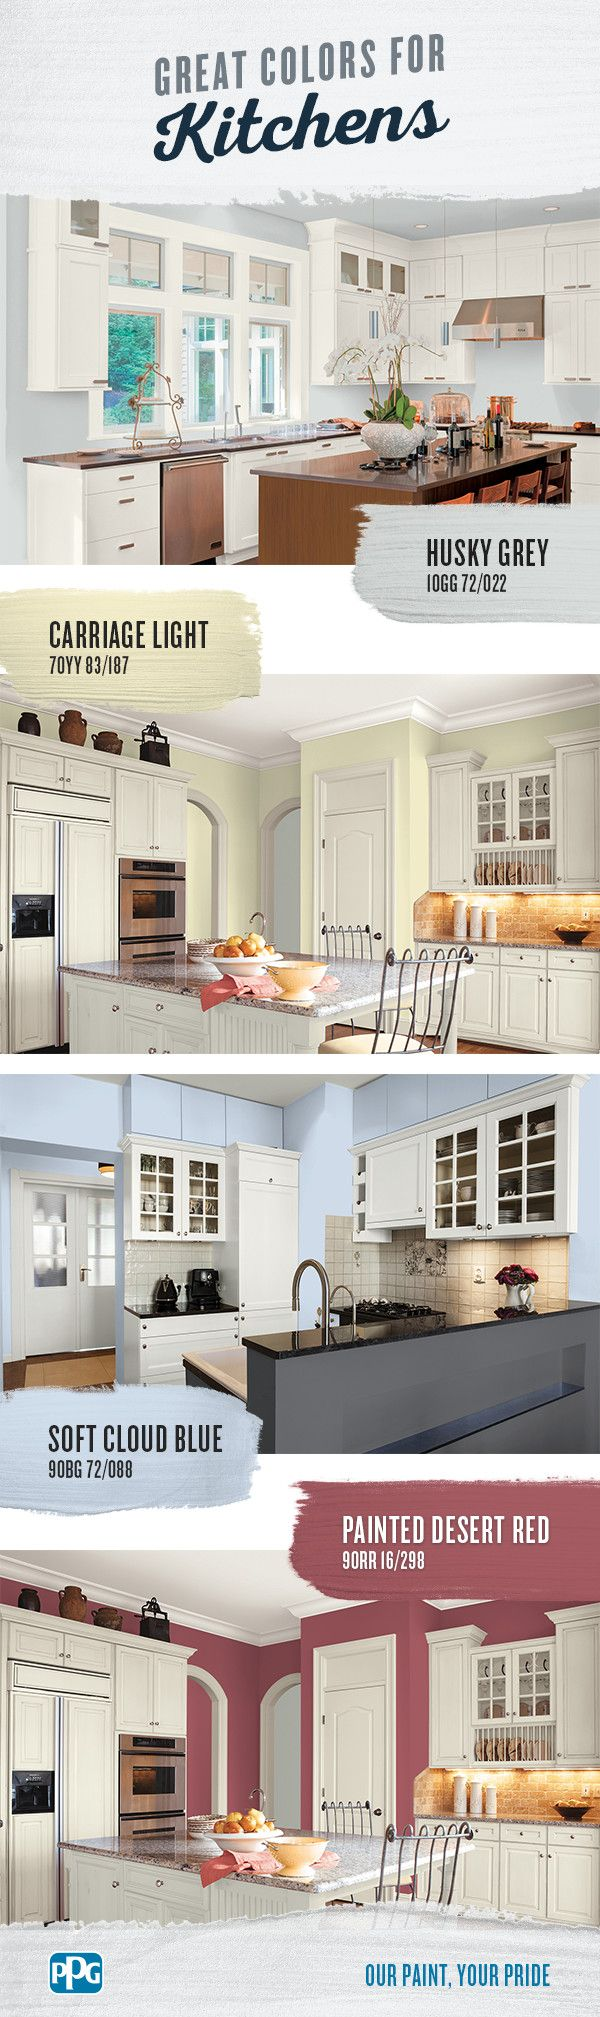 Great Colors for Kitchens | With so many paint colors for kitchens, it can be hard to choose the right one for your home. Follow our guide for 4 fun kitchen paint color options for every decorating aesthetic.